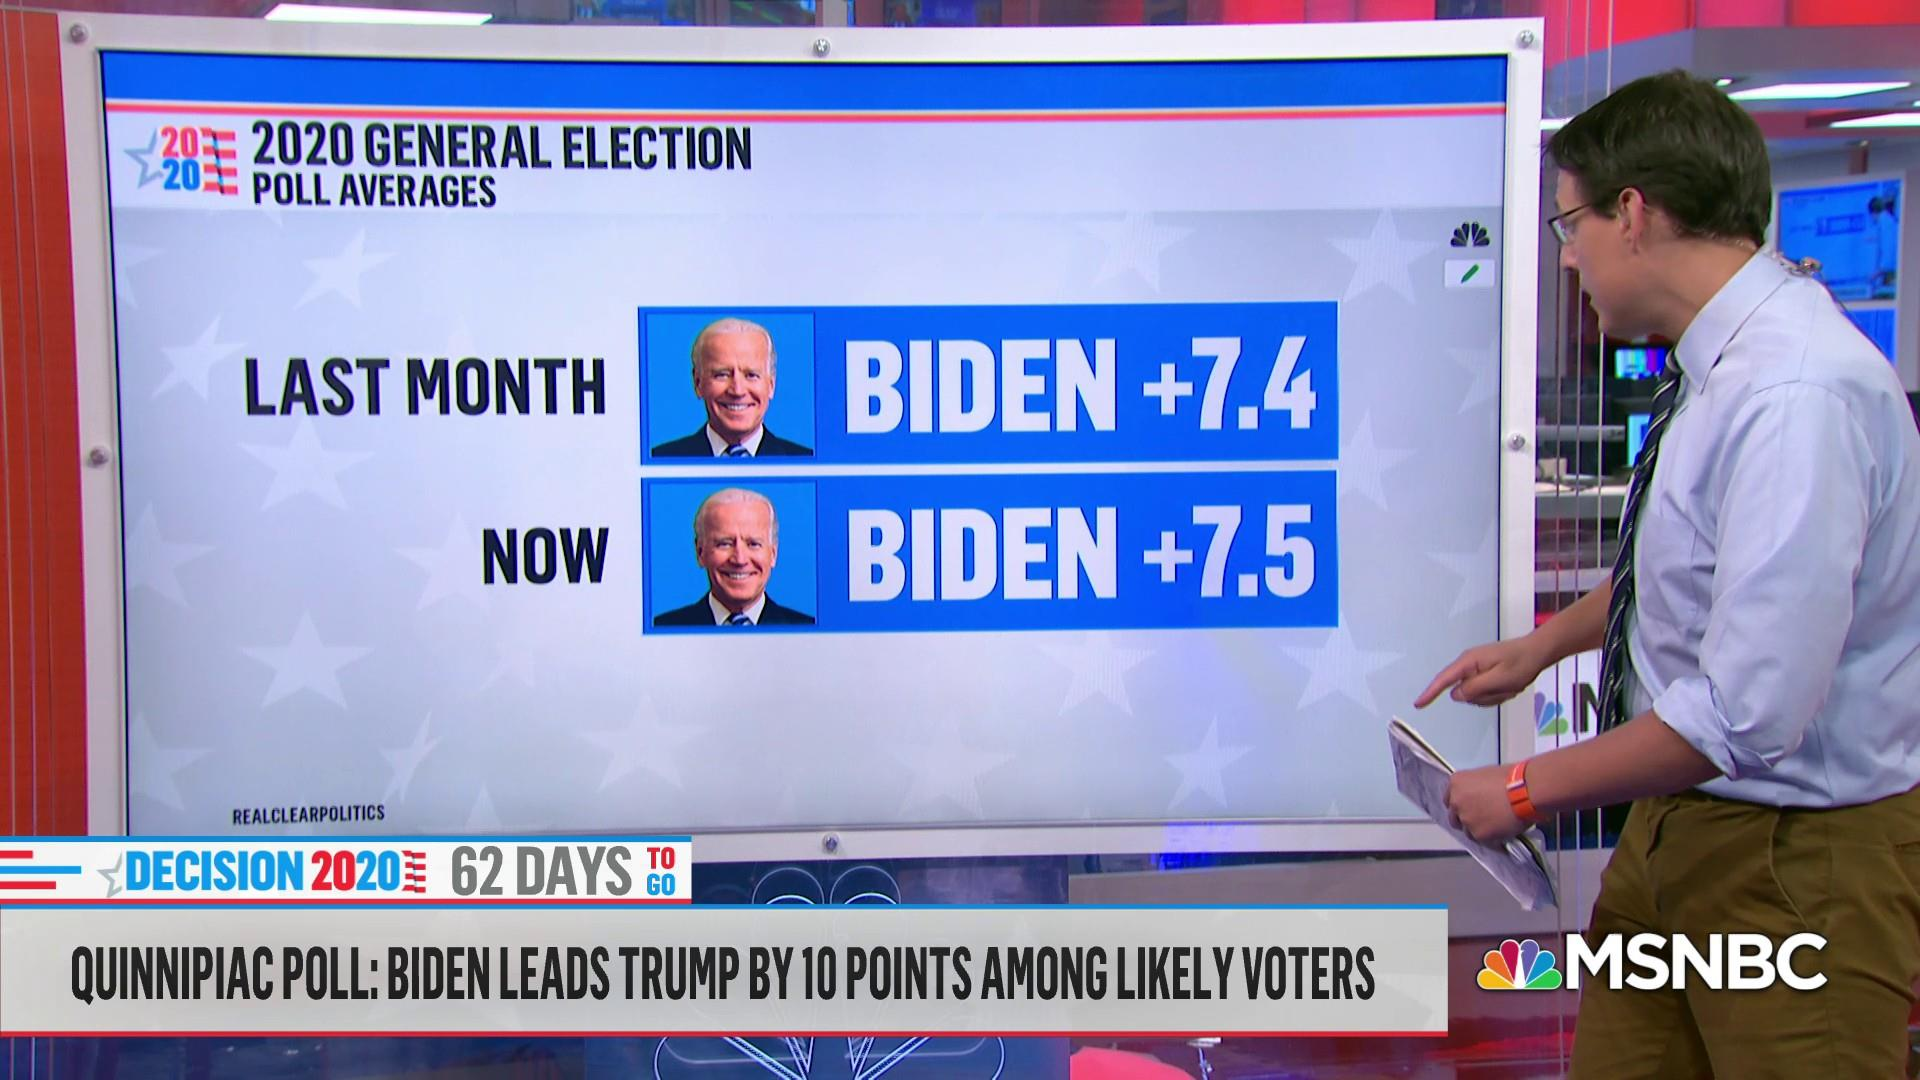 Trump S New Strategy Against Biden Faces Signs Of Trouble Polls Show